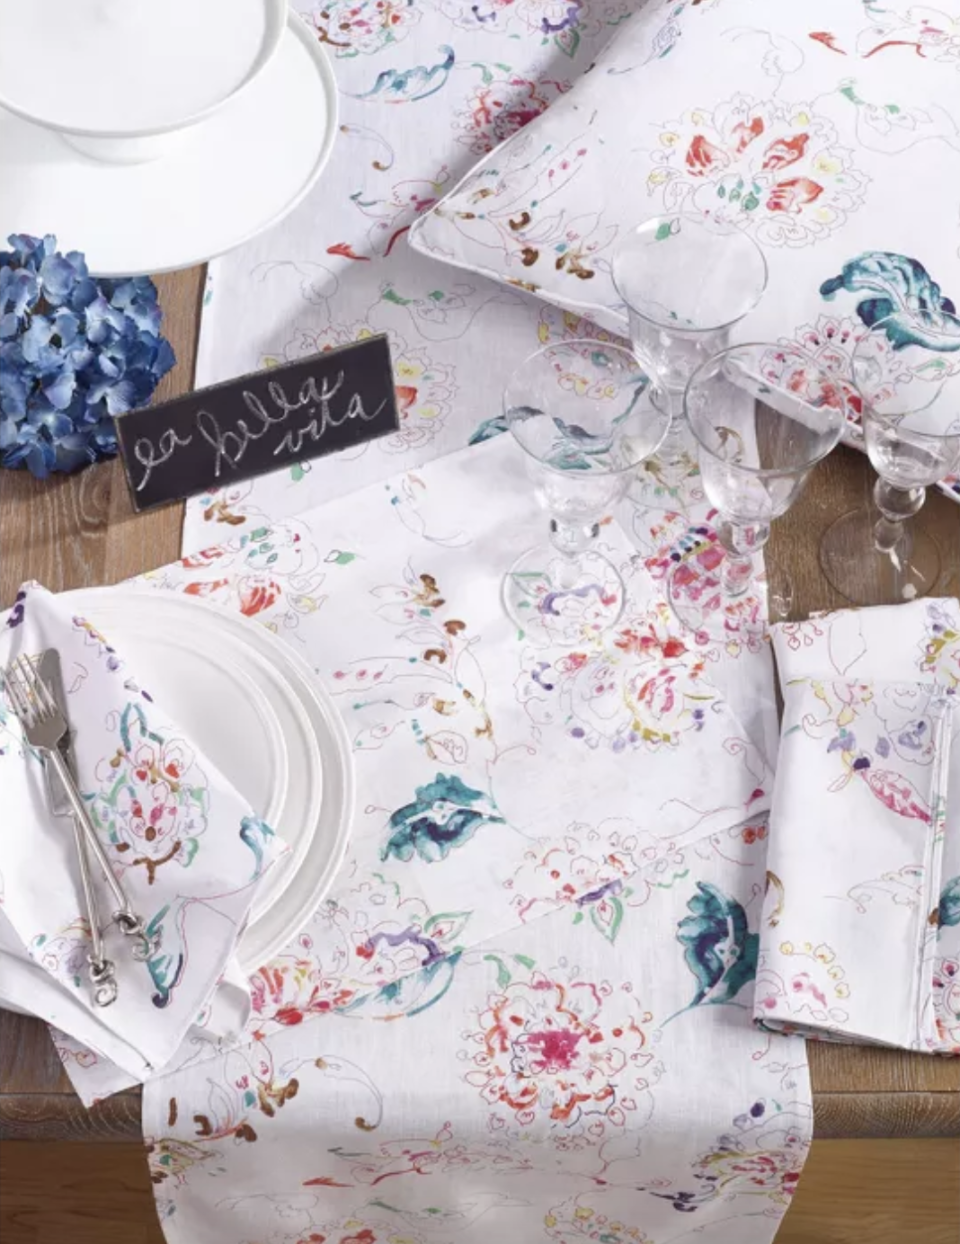 "<p><strong>Saro Lifestyle</strong></p><p>target.com</p><p><strong>$40.99</strong></p><p><a href=""https://www.target.com/p/4pk-white-primavera-printed-floral-design-napkin-20-34-saro-lifestyle/-/A-52602566"" rel=""nofollow noopener"" target=""_blank"" data-ylk=""slk:Shop Now"" class=""link rapid-noclick-resp"">Shop Now</a></p><p>If your mom loves hosting dinner parties, she'll adore a matching set of pink floral napkins.</p>"